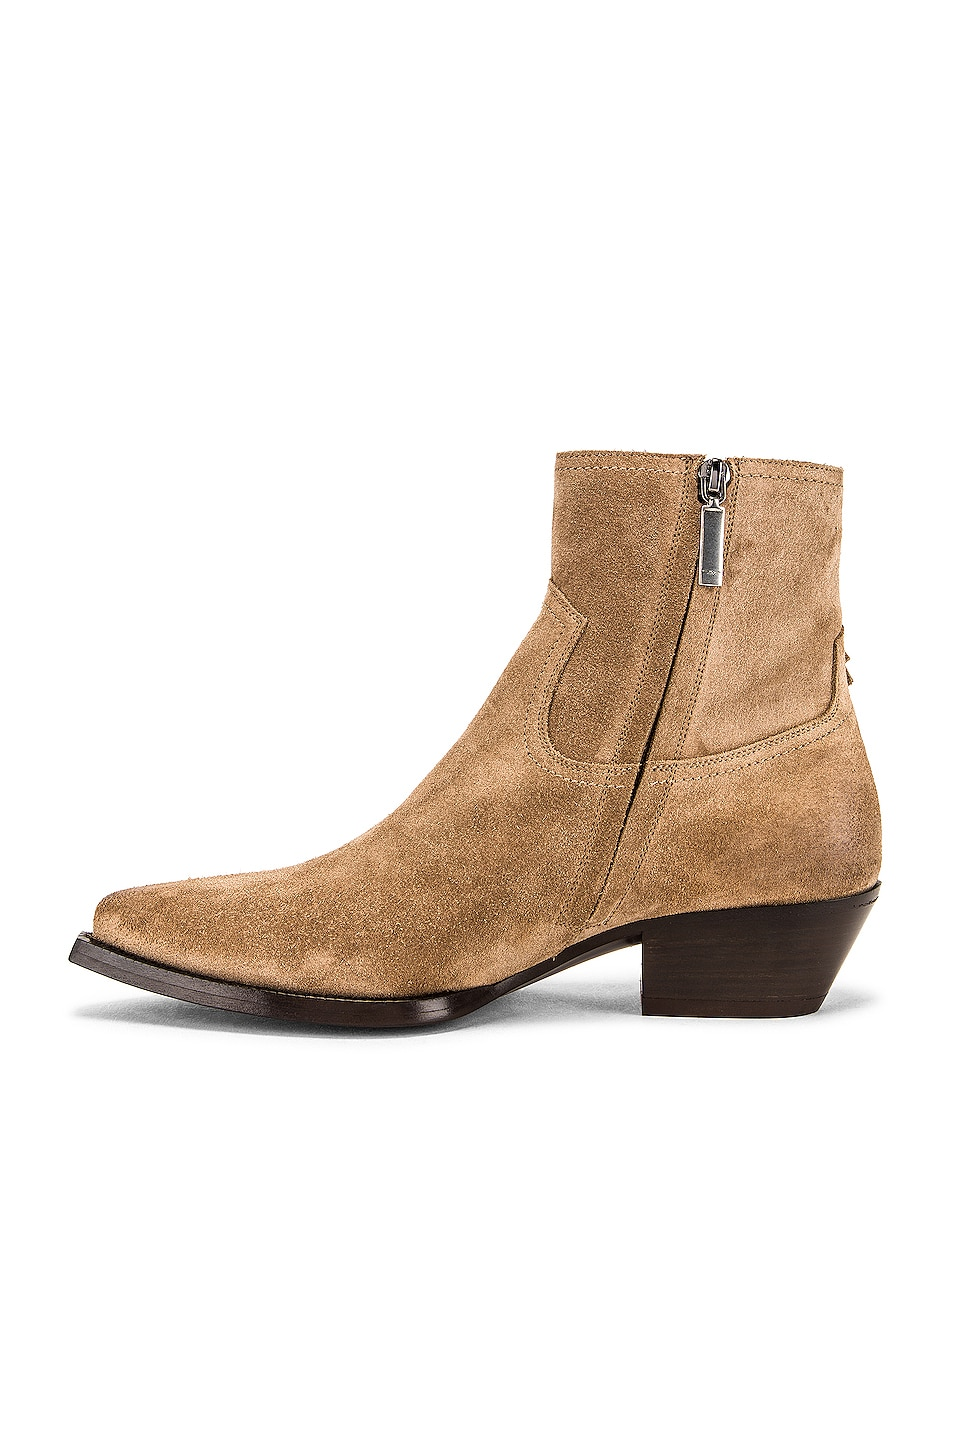 Image 5 of Saint Laurent Lukas Fringe Boots in New Sigaro